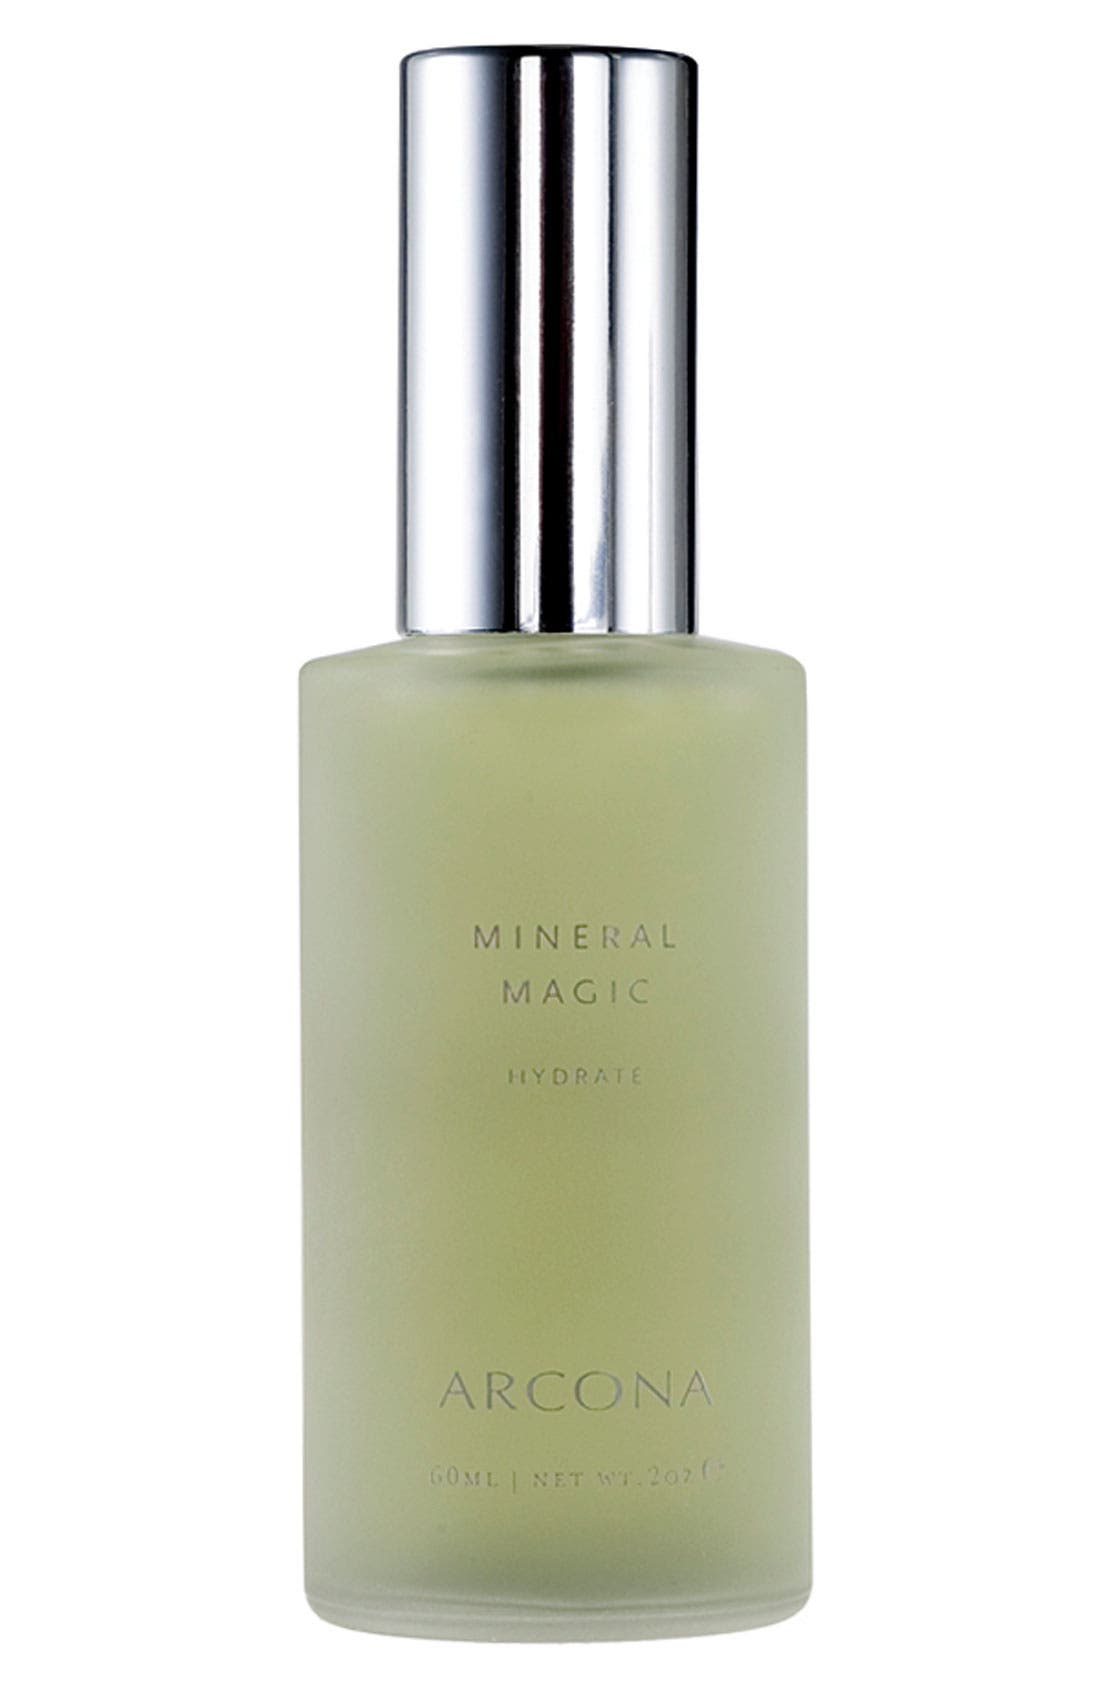 ARCONA Mineral Magic Hydrating Spray